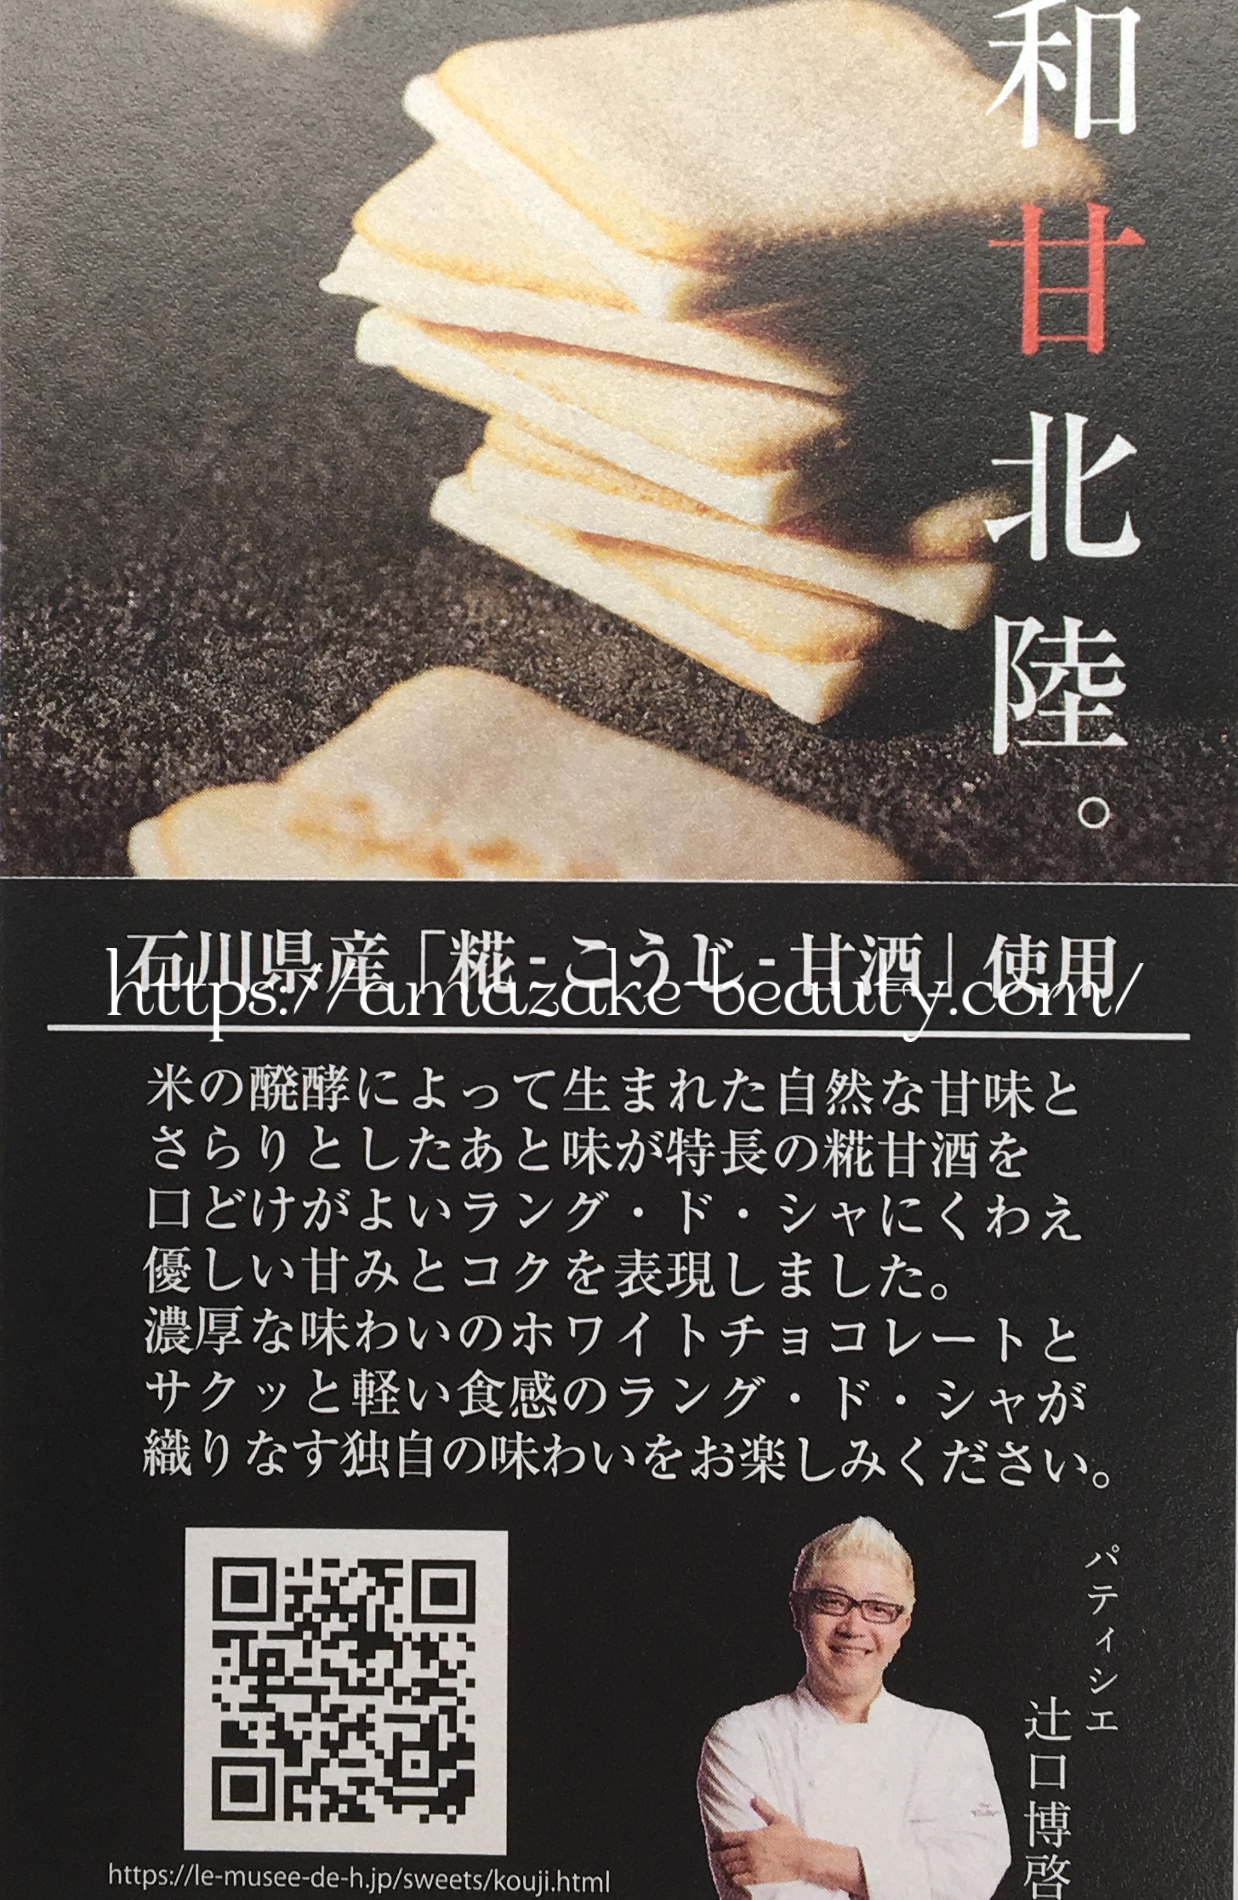 [amazake sweets]ru myuze do asshu[koji rangudosha](description)